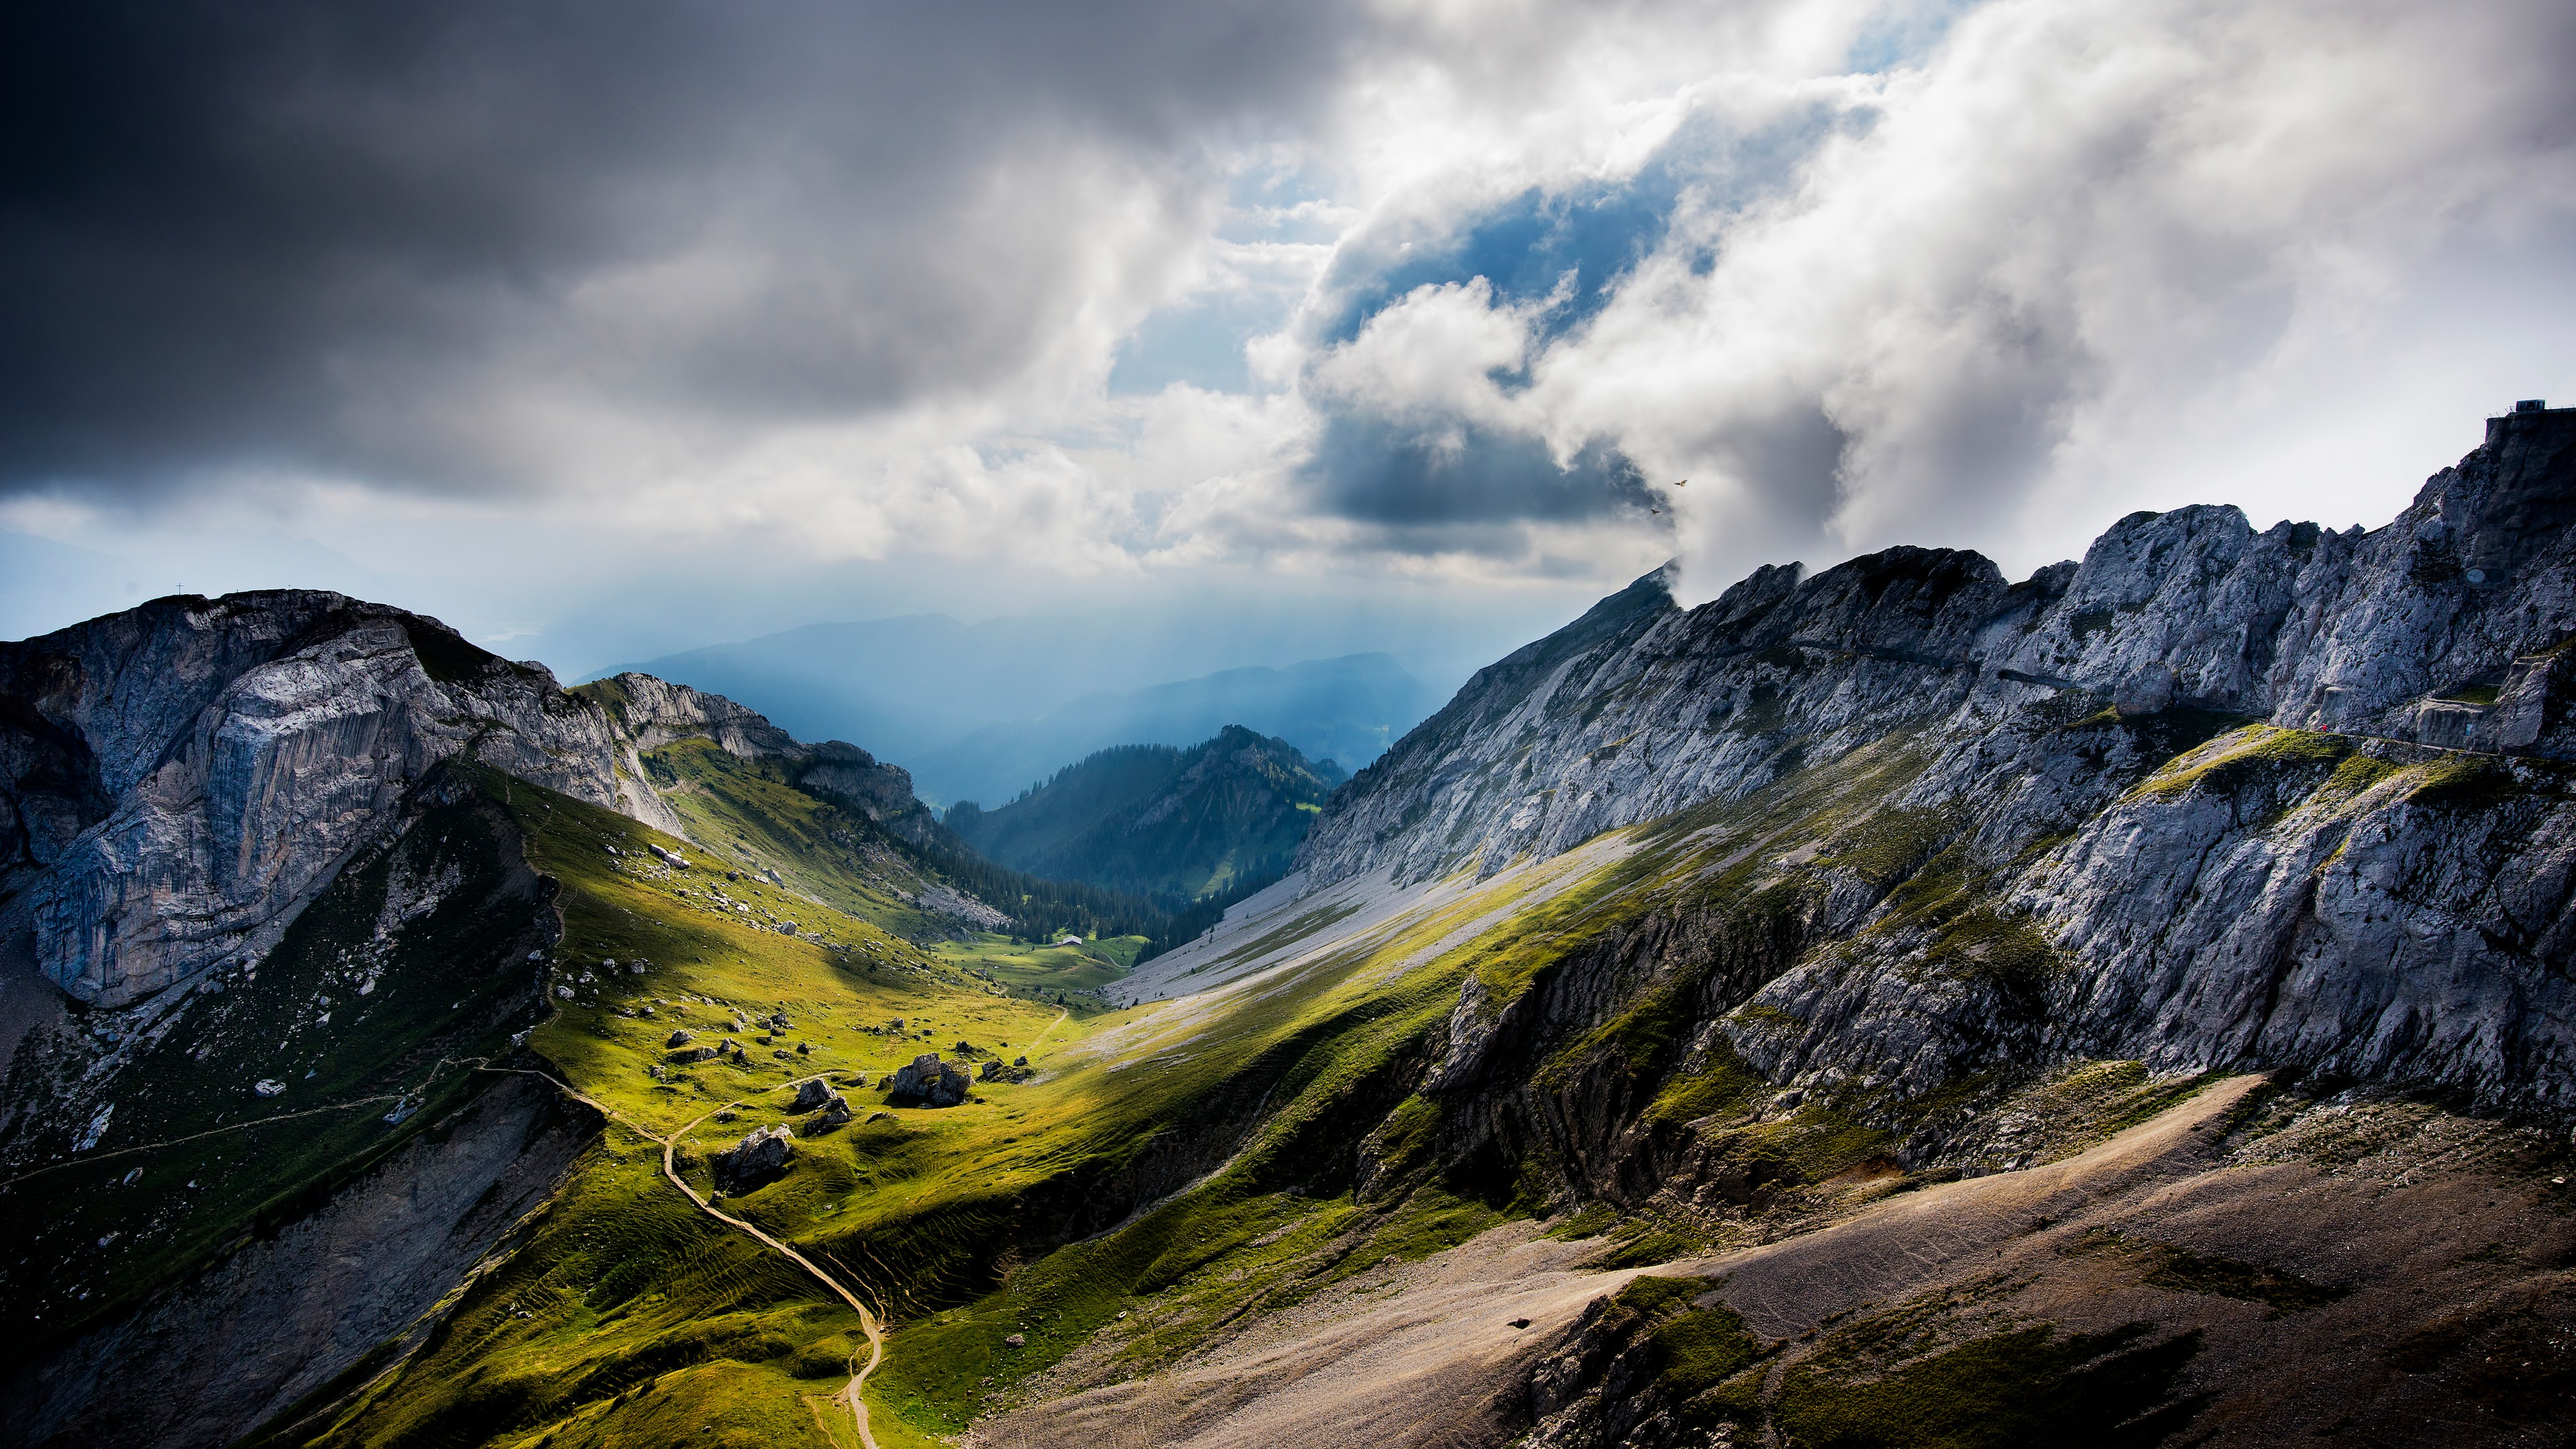 Alps Mountain HD Wallpapers Backgrounds Wallpaper